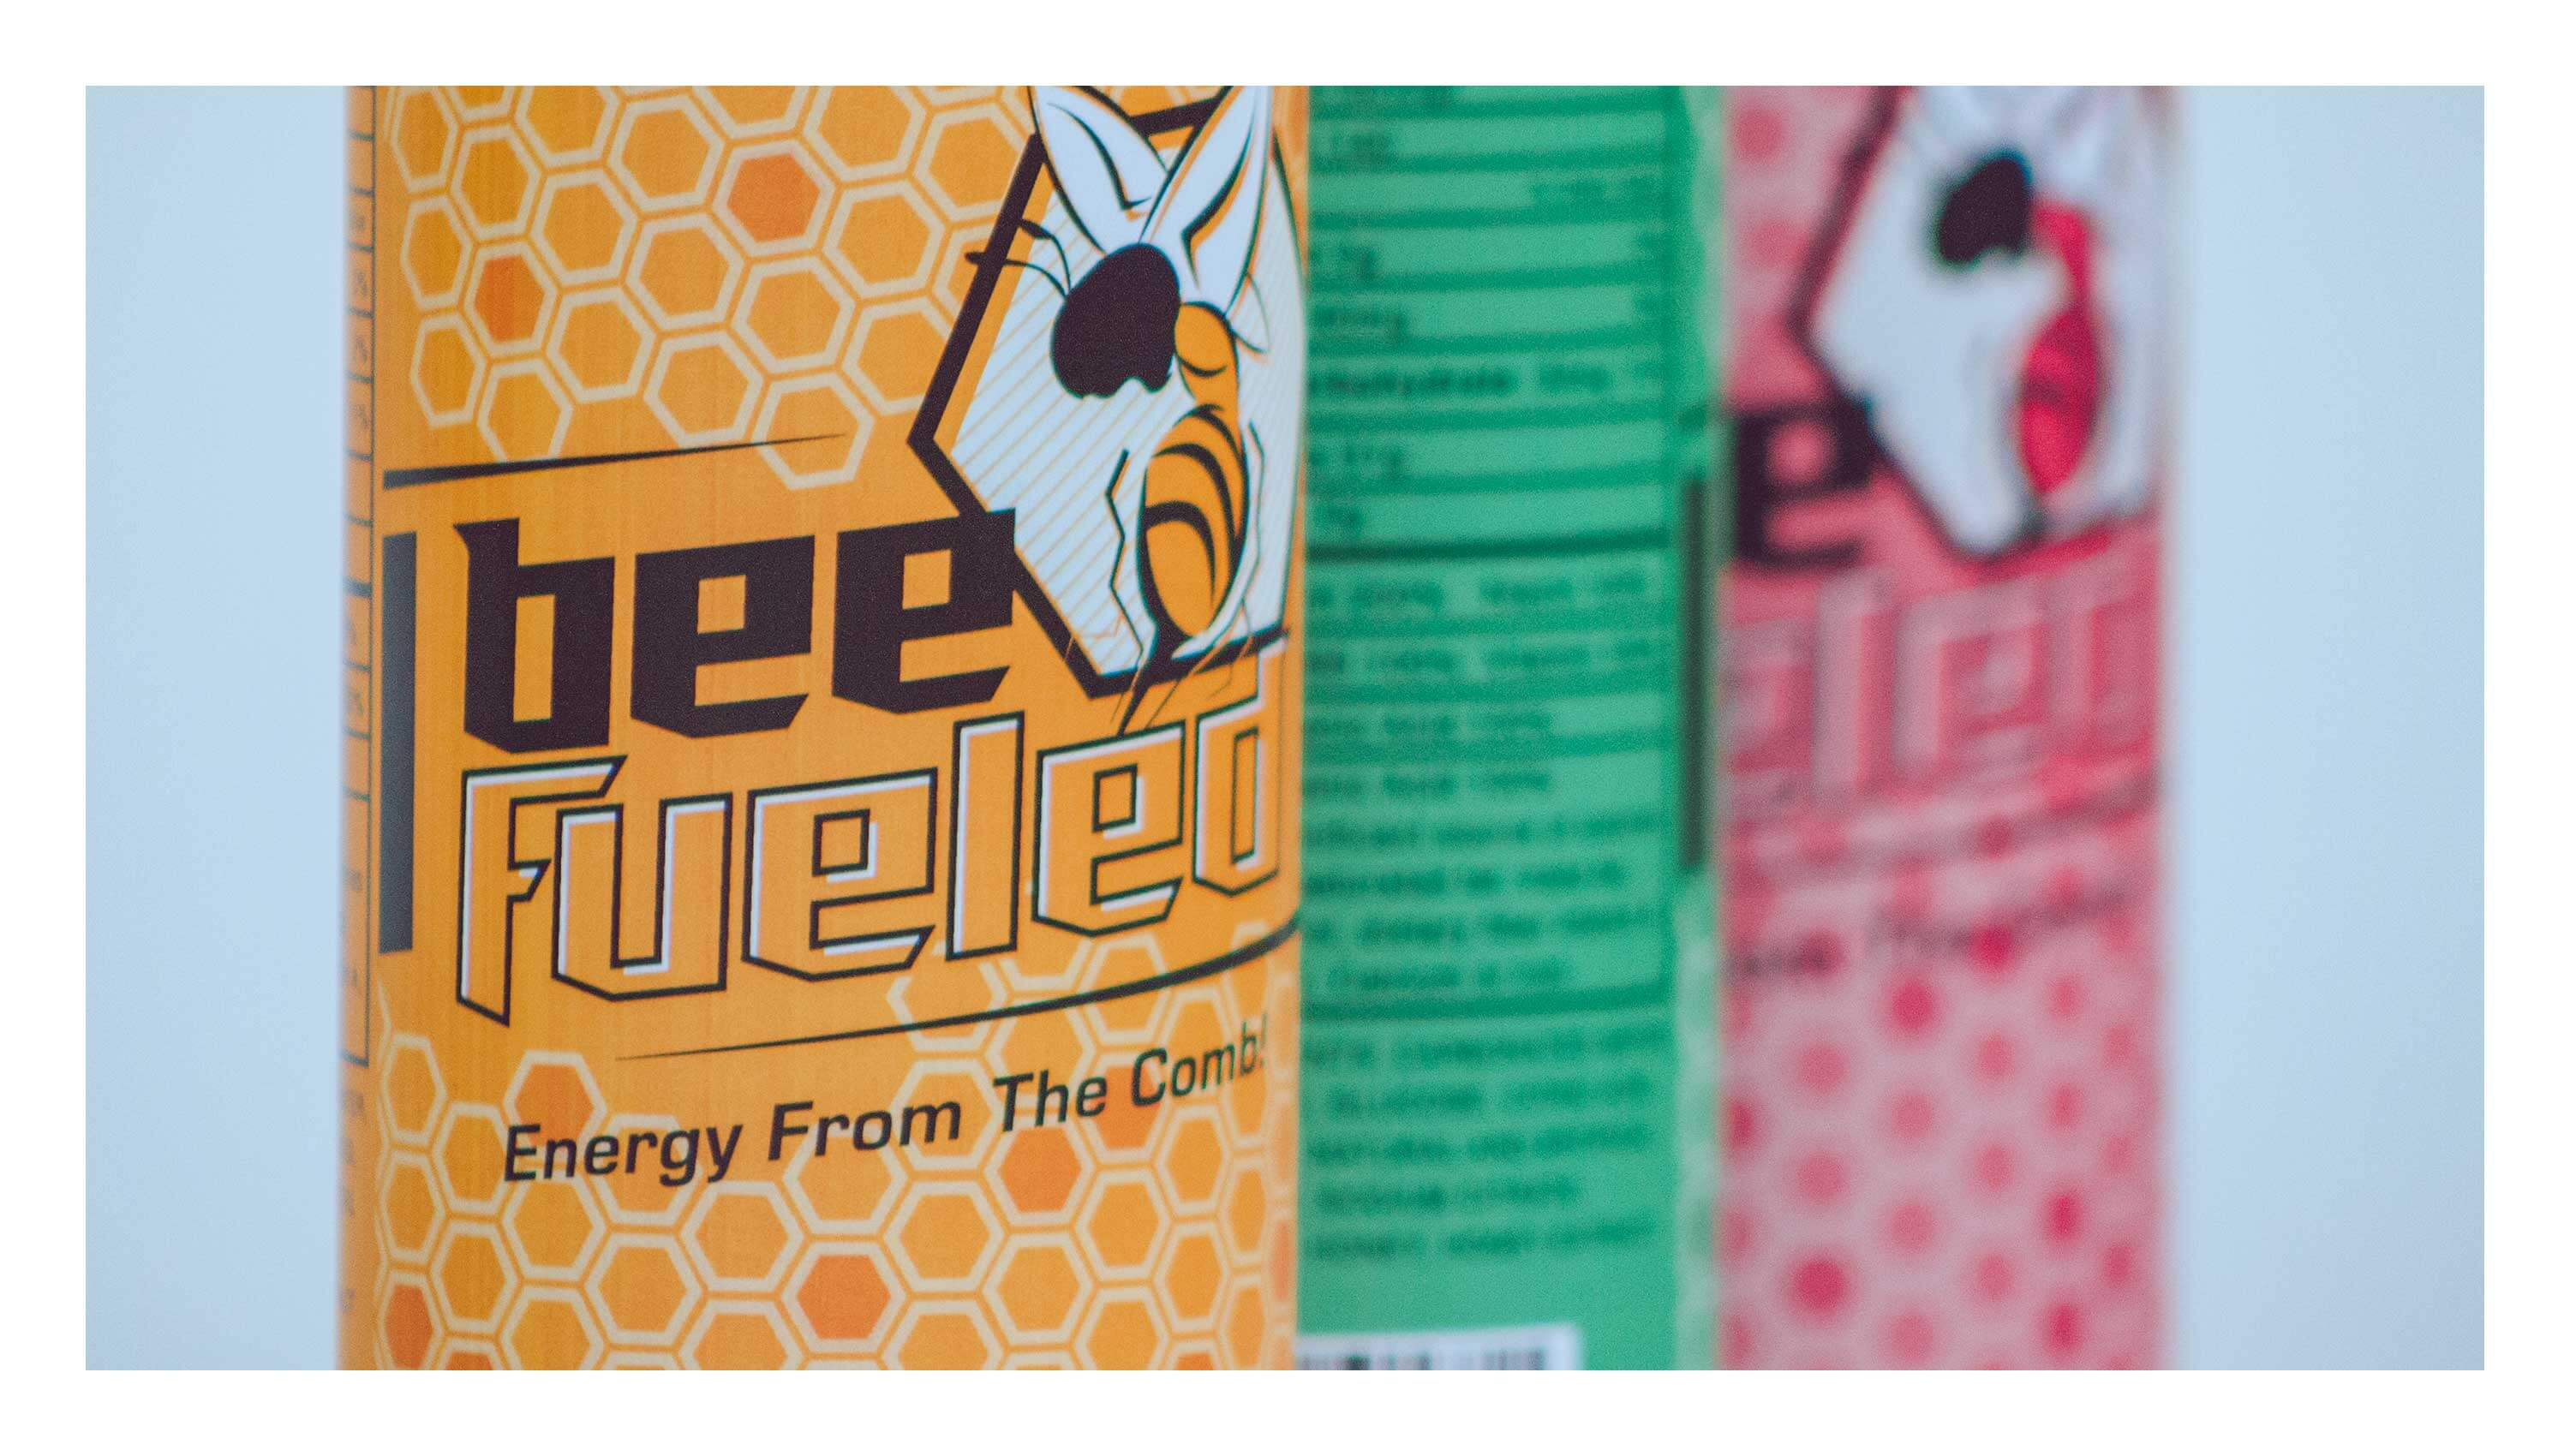 Bee Fueled can packaging.